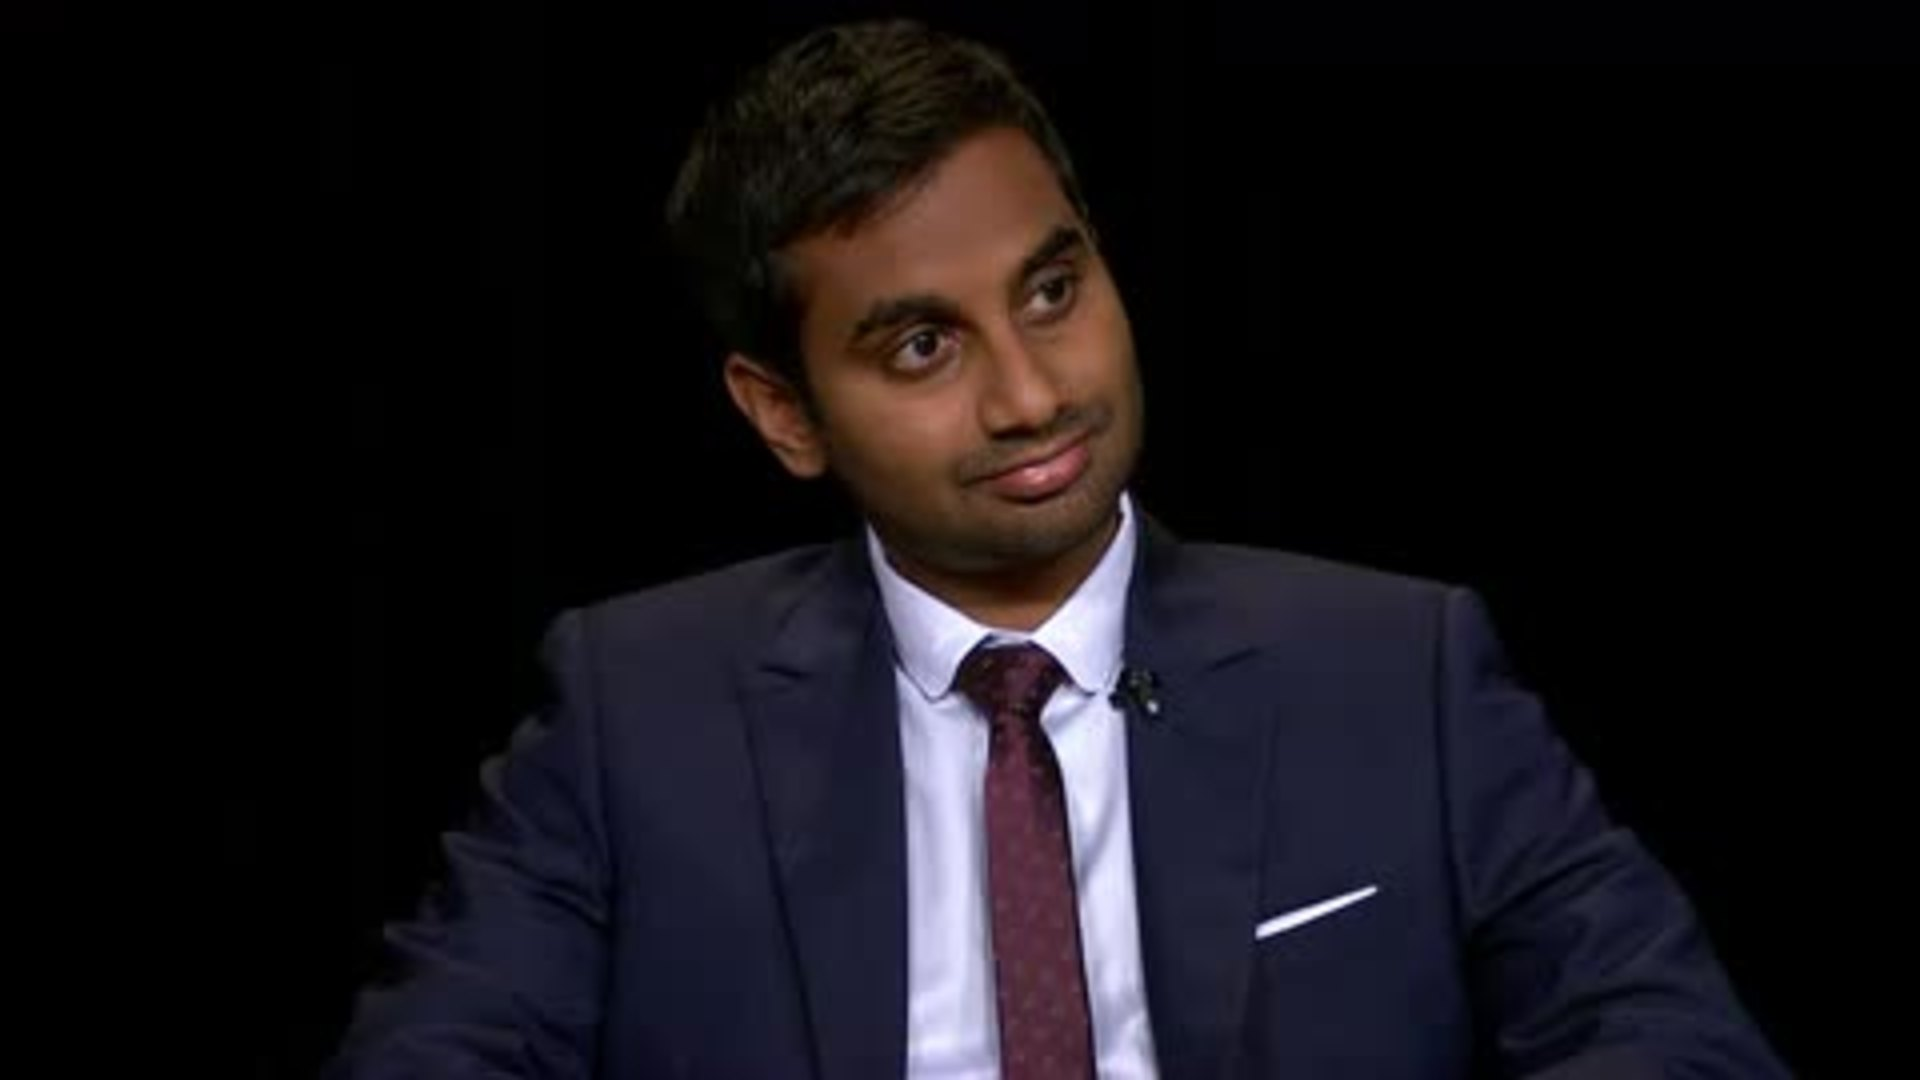 Aziz ansari charlie rose comedian aziz ansari presents his new book co authored with nyu sociologist eric klinenberg modern romance an investigation stopboris